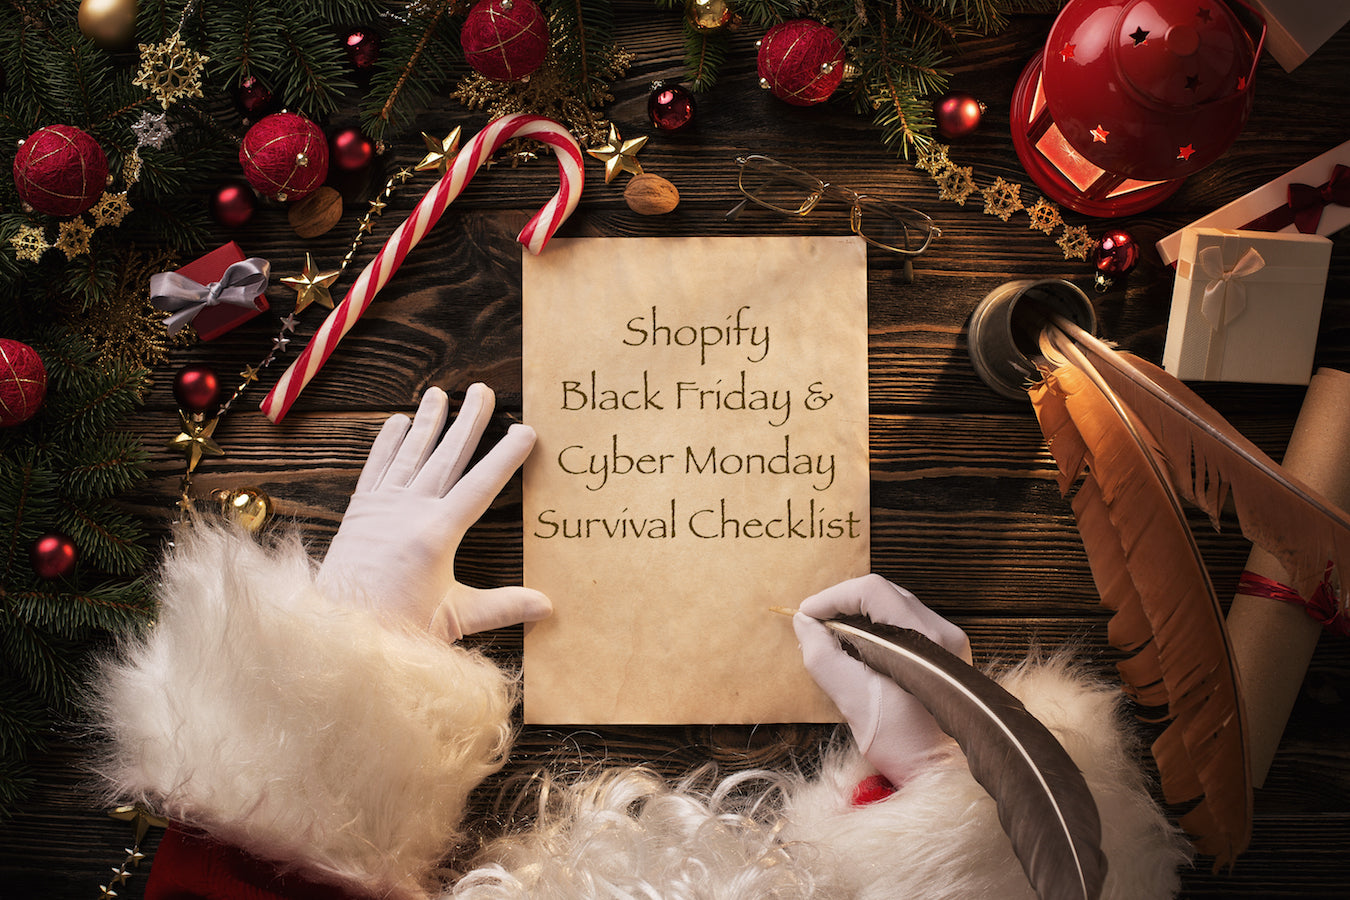 Black Friday & Cyber Monday 2018 – A Shopify Website Survival Checklist